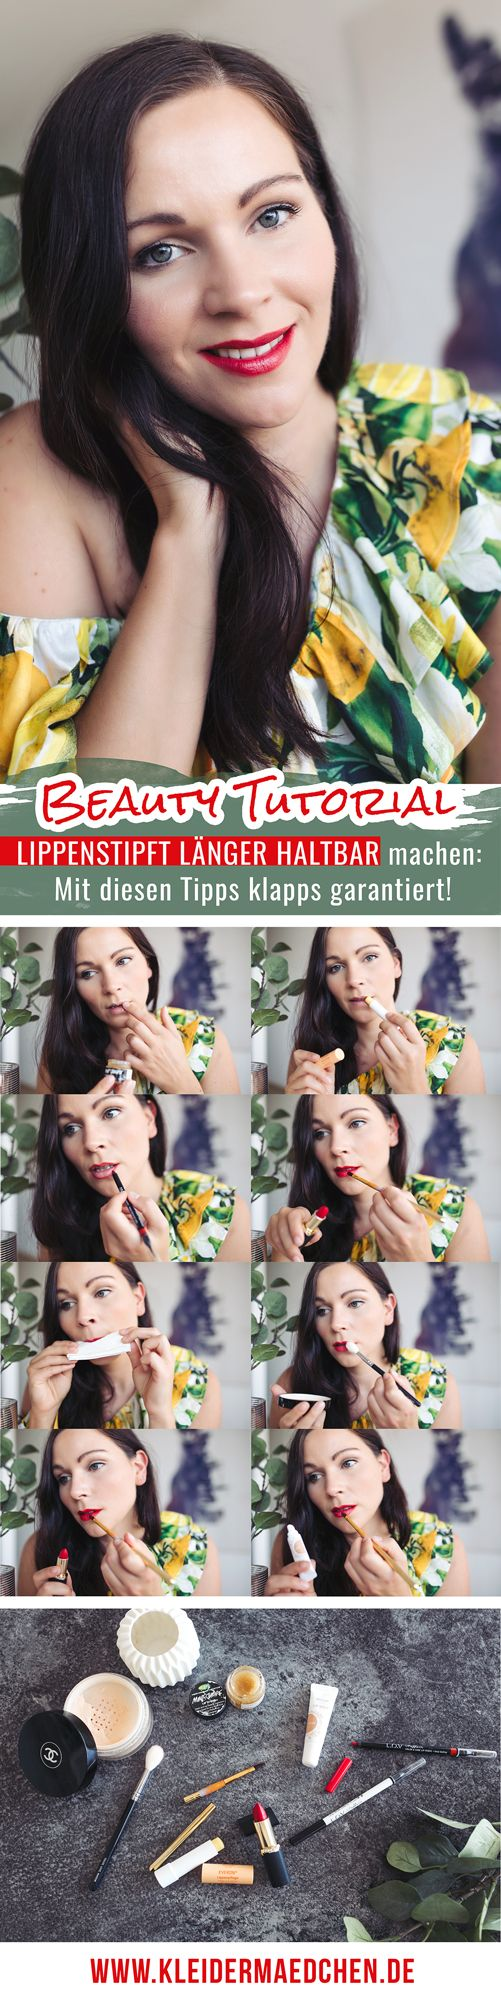 Lippenstift auftragen, Lippenstift länger haltbar machen, Sommer-Lippenstifte, Kleidermaedchen Modeblog, Magazin, erfurt, thueringen, berlin, Beautyblog, kleidermaedchen.de, Influencer Marketing und Kommunikation, Beauty, Beauty-Tutorial, Rote Lippen im Sommer, Sommerlippenstift, L.O.V Lipaffair Lip Definer, Chanel Poudre Universelle Libre, Zoeva 134 Luxe Powder Fusion, Lush Lip Scrub Mint, Weleda Lip Balm Nude, Weleda Lippenpflege Everron, Jacks Beauty Line Lippenpinsel, L'oreal Color Riche…